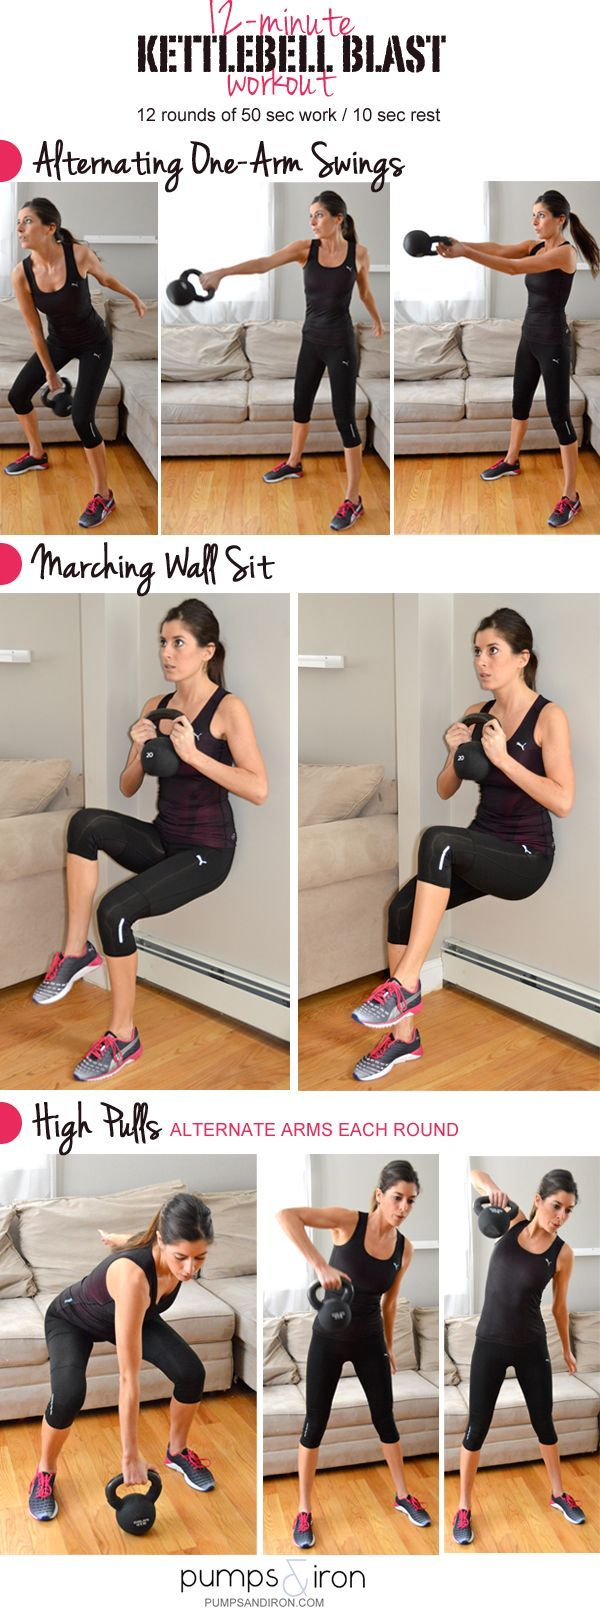 12-Minute Kettlebell Blast Workout. Works quads, hamstring, flutes, lower back, upper back, shoulders, triceps and biceps. It's the ultimate full body workout for the time crunched